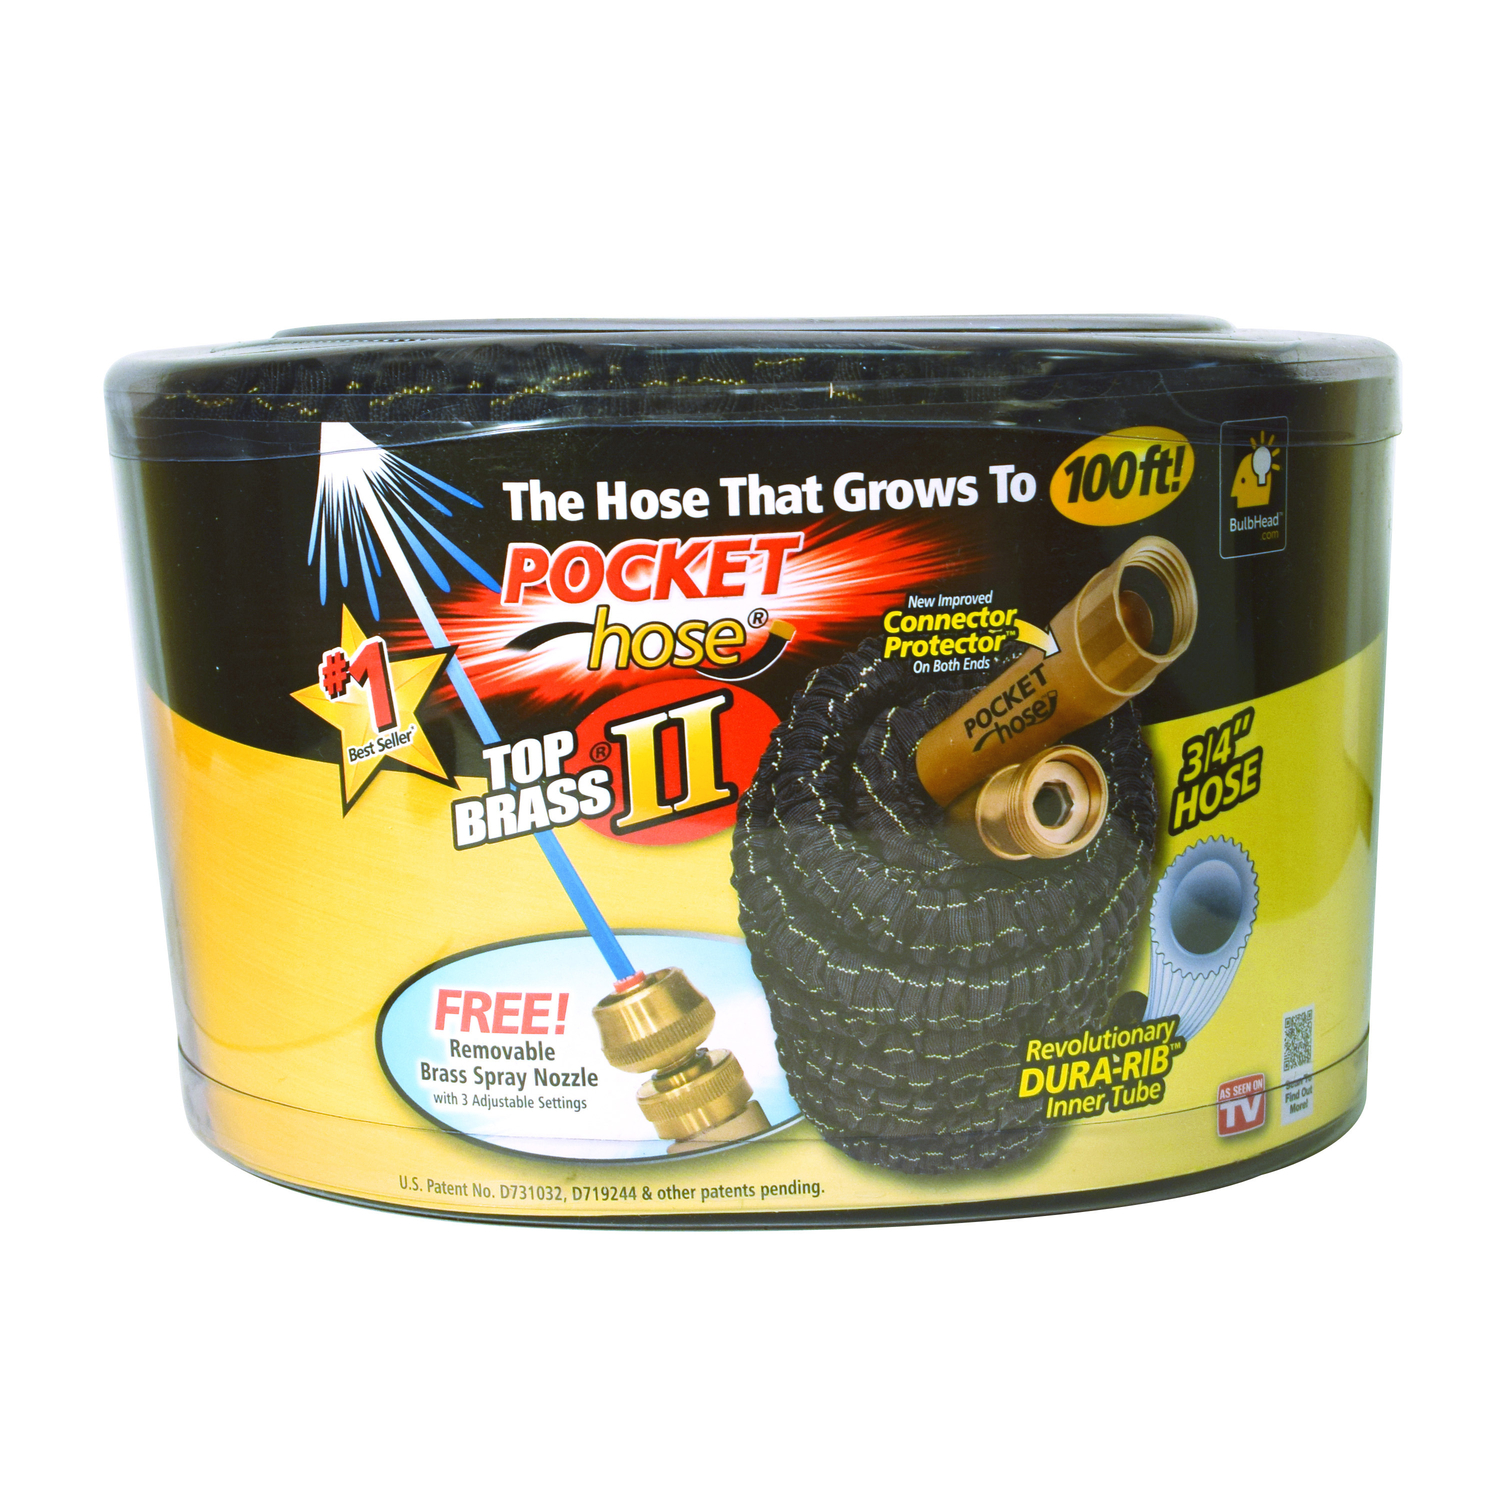 Telebrands  Top Brass II As Seen On TV  3/4 in. Dia. x 100 ft. L Expanding  Black  Garden Hose